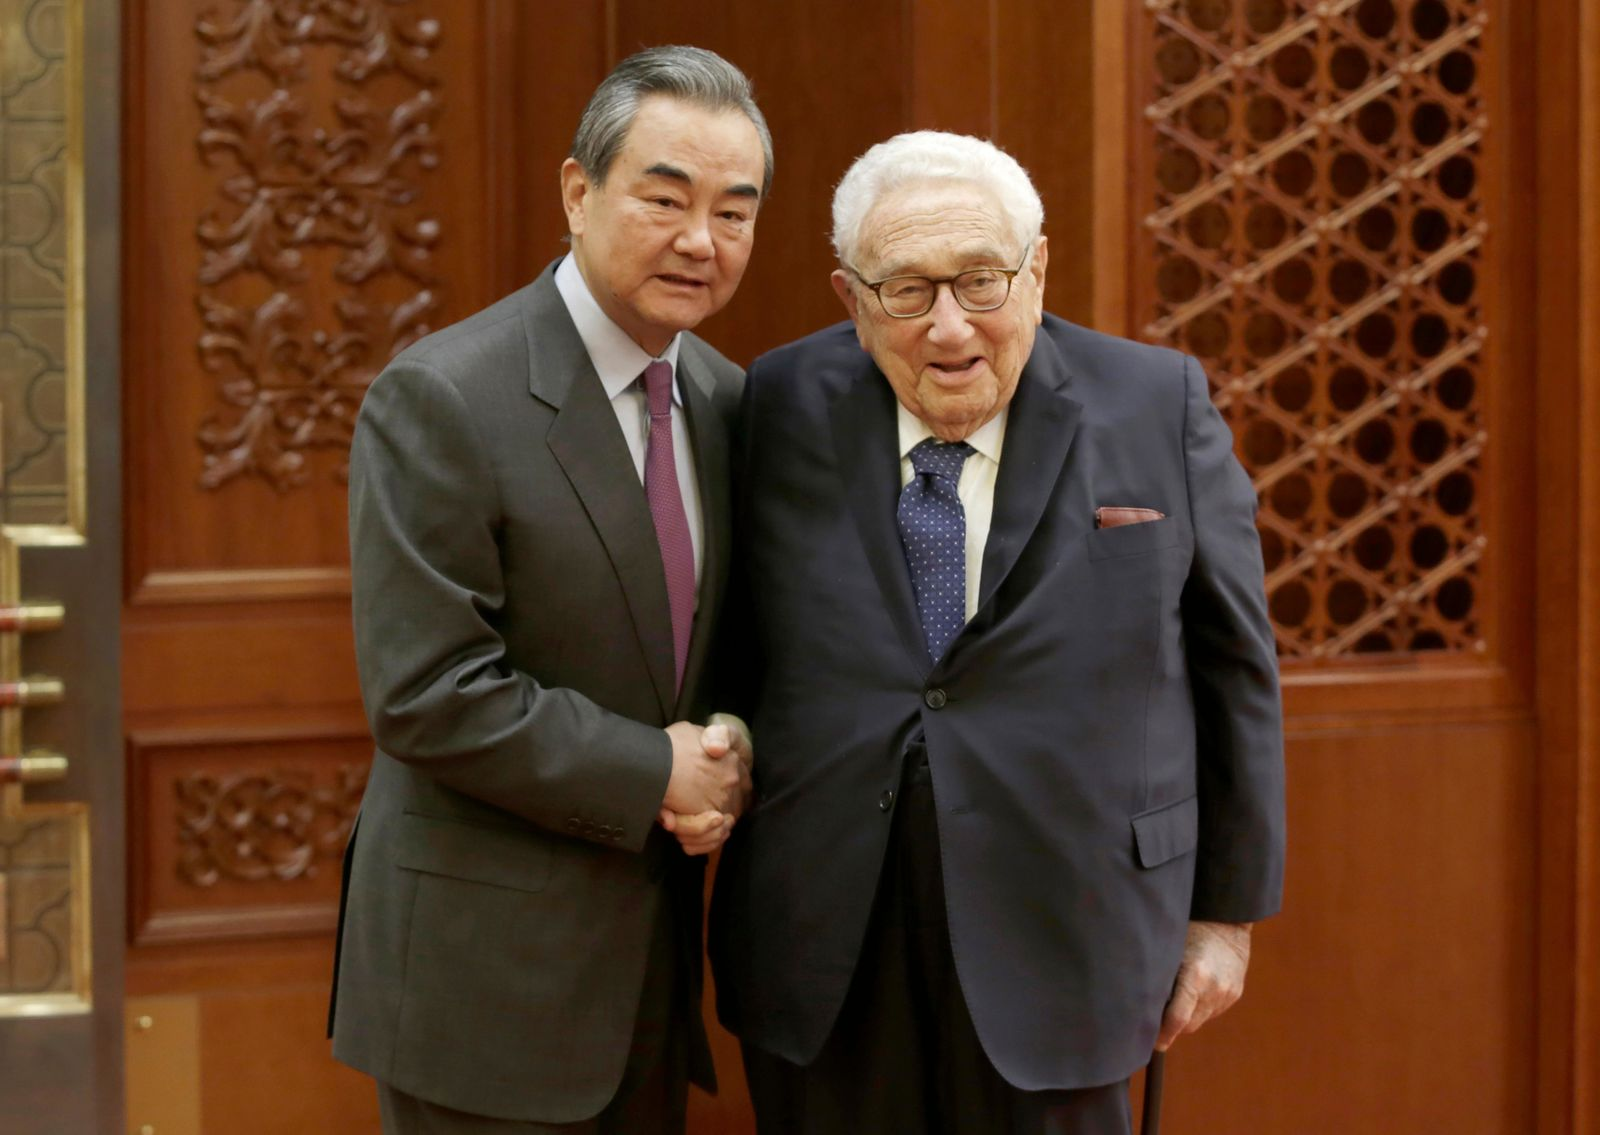 Chinese Foreign Minister Wang Yi meets former U.S. Secretary of State Henry Kissinger at the Great Hall of the People in Beijing, Friday, Nov. 22, 2019. (Jason Lee/Pool Photo via AP)